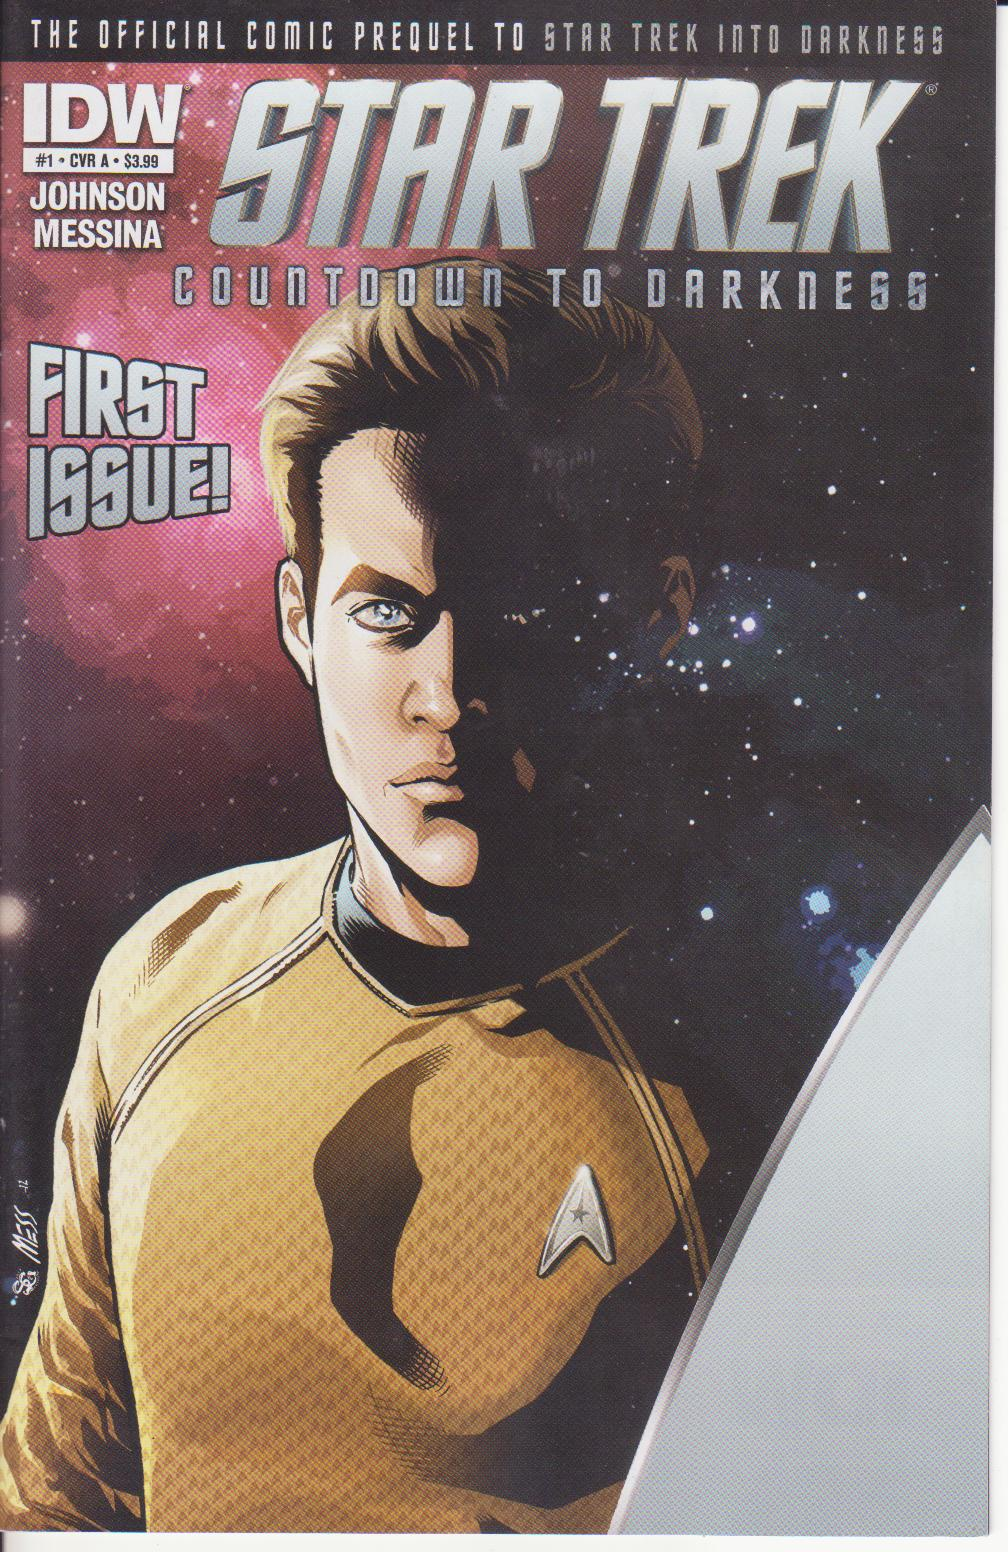 Star Trek Countdown to Darkness 01